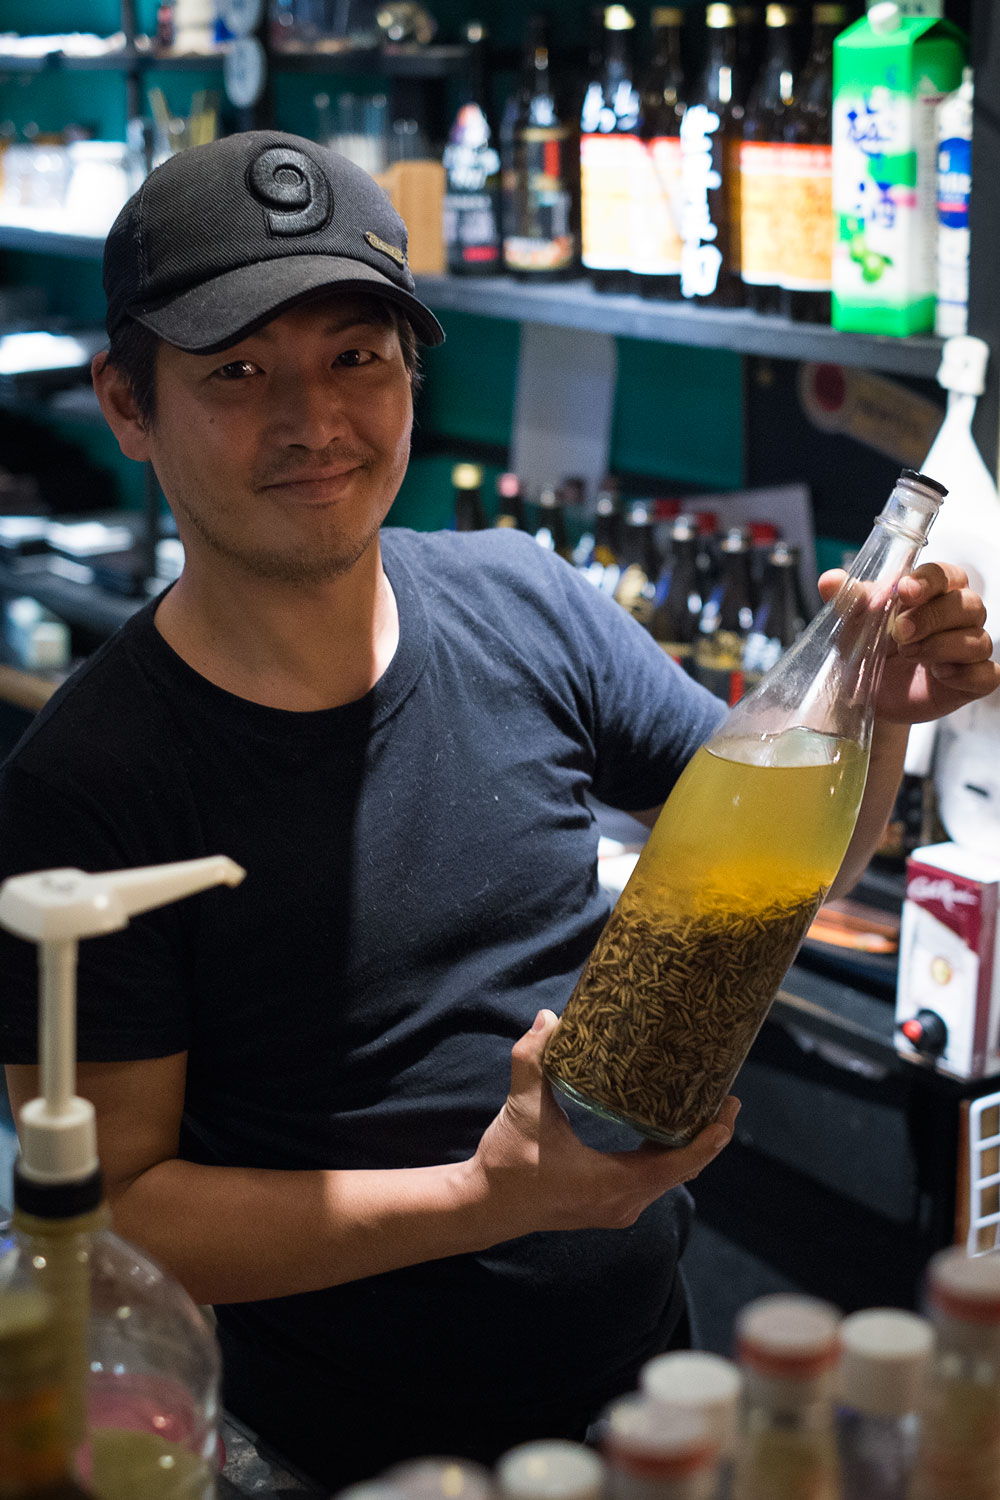 The owner with the maggot liquor bottle